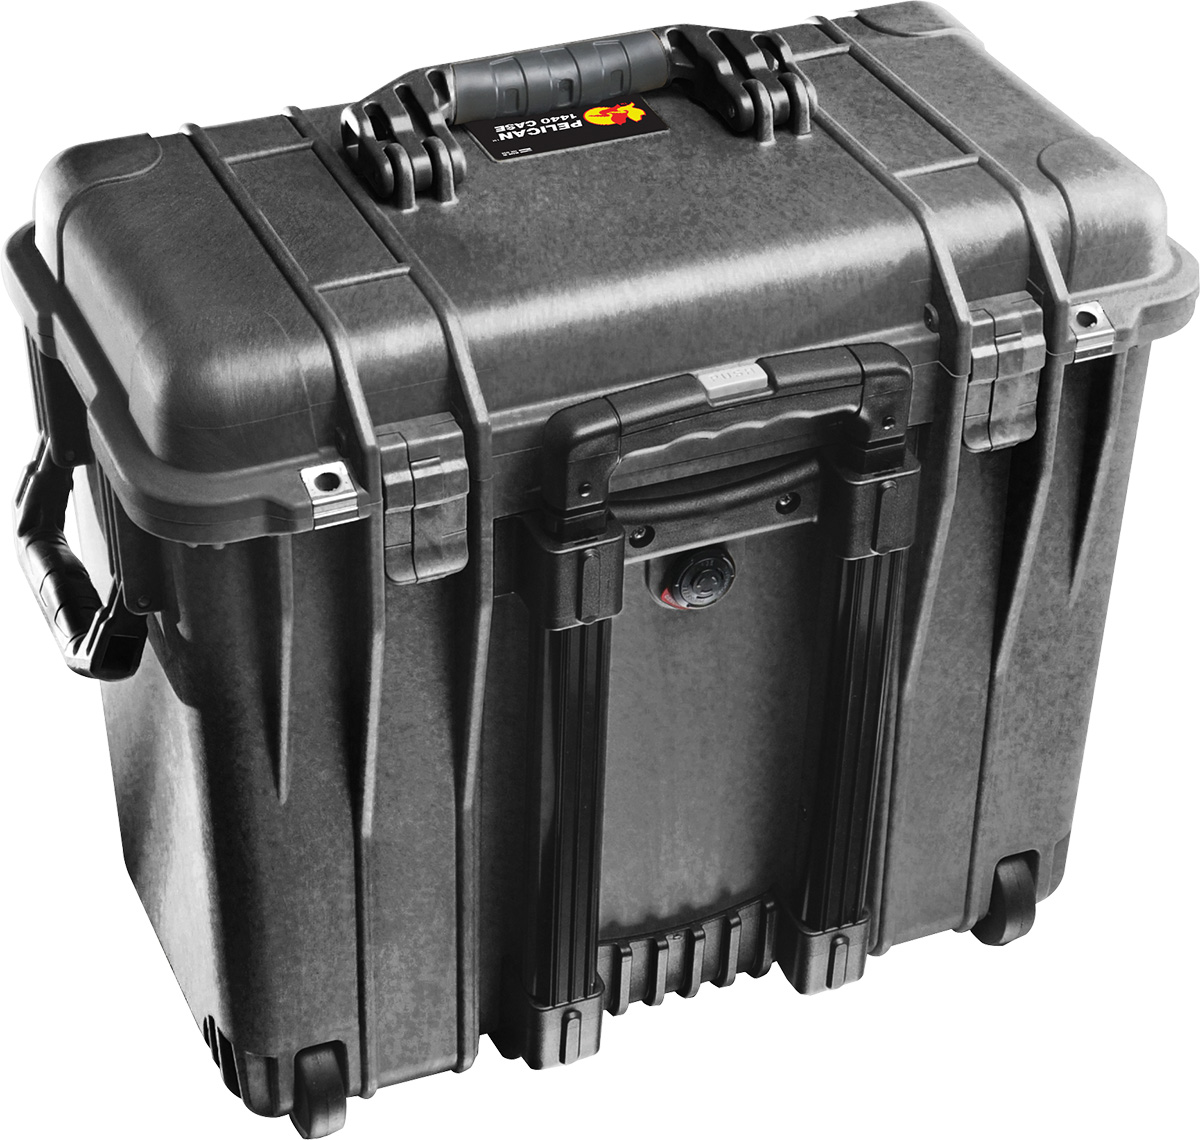 pelican 1440 black top loader case